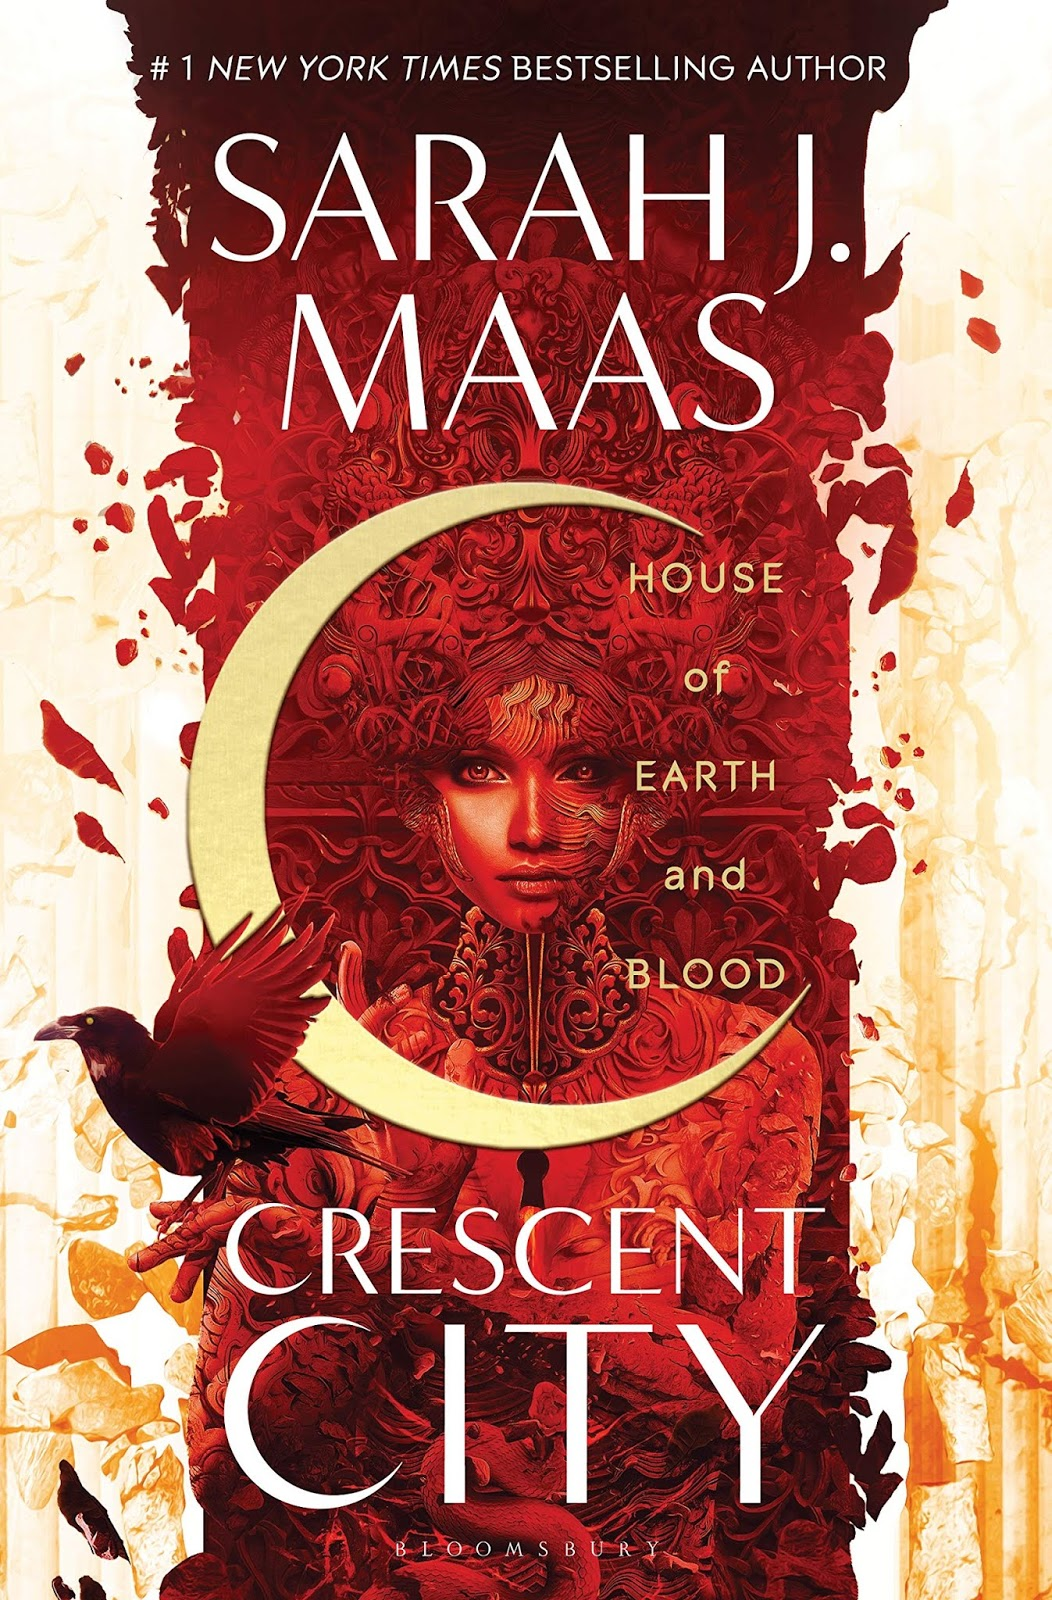 House of Earth and Blood by Sarah J. Maa